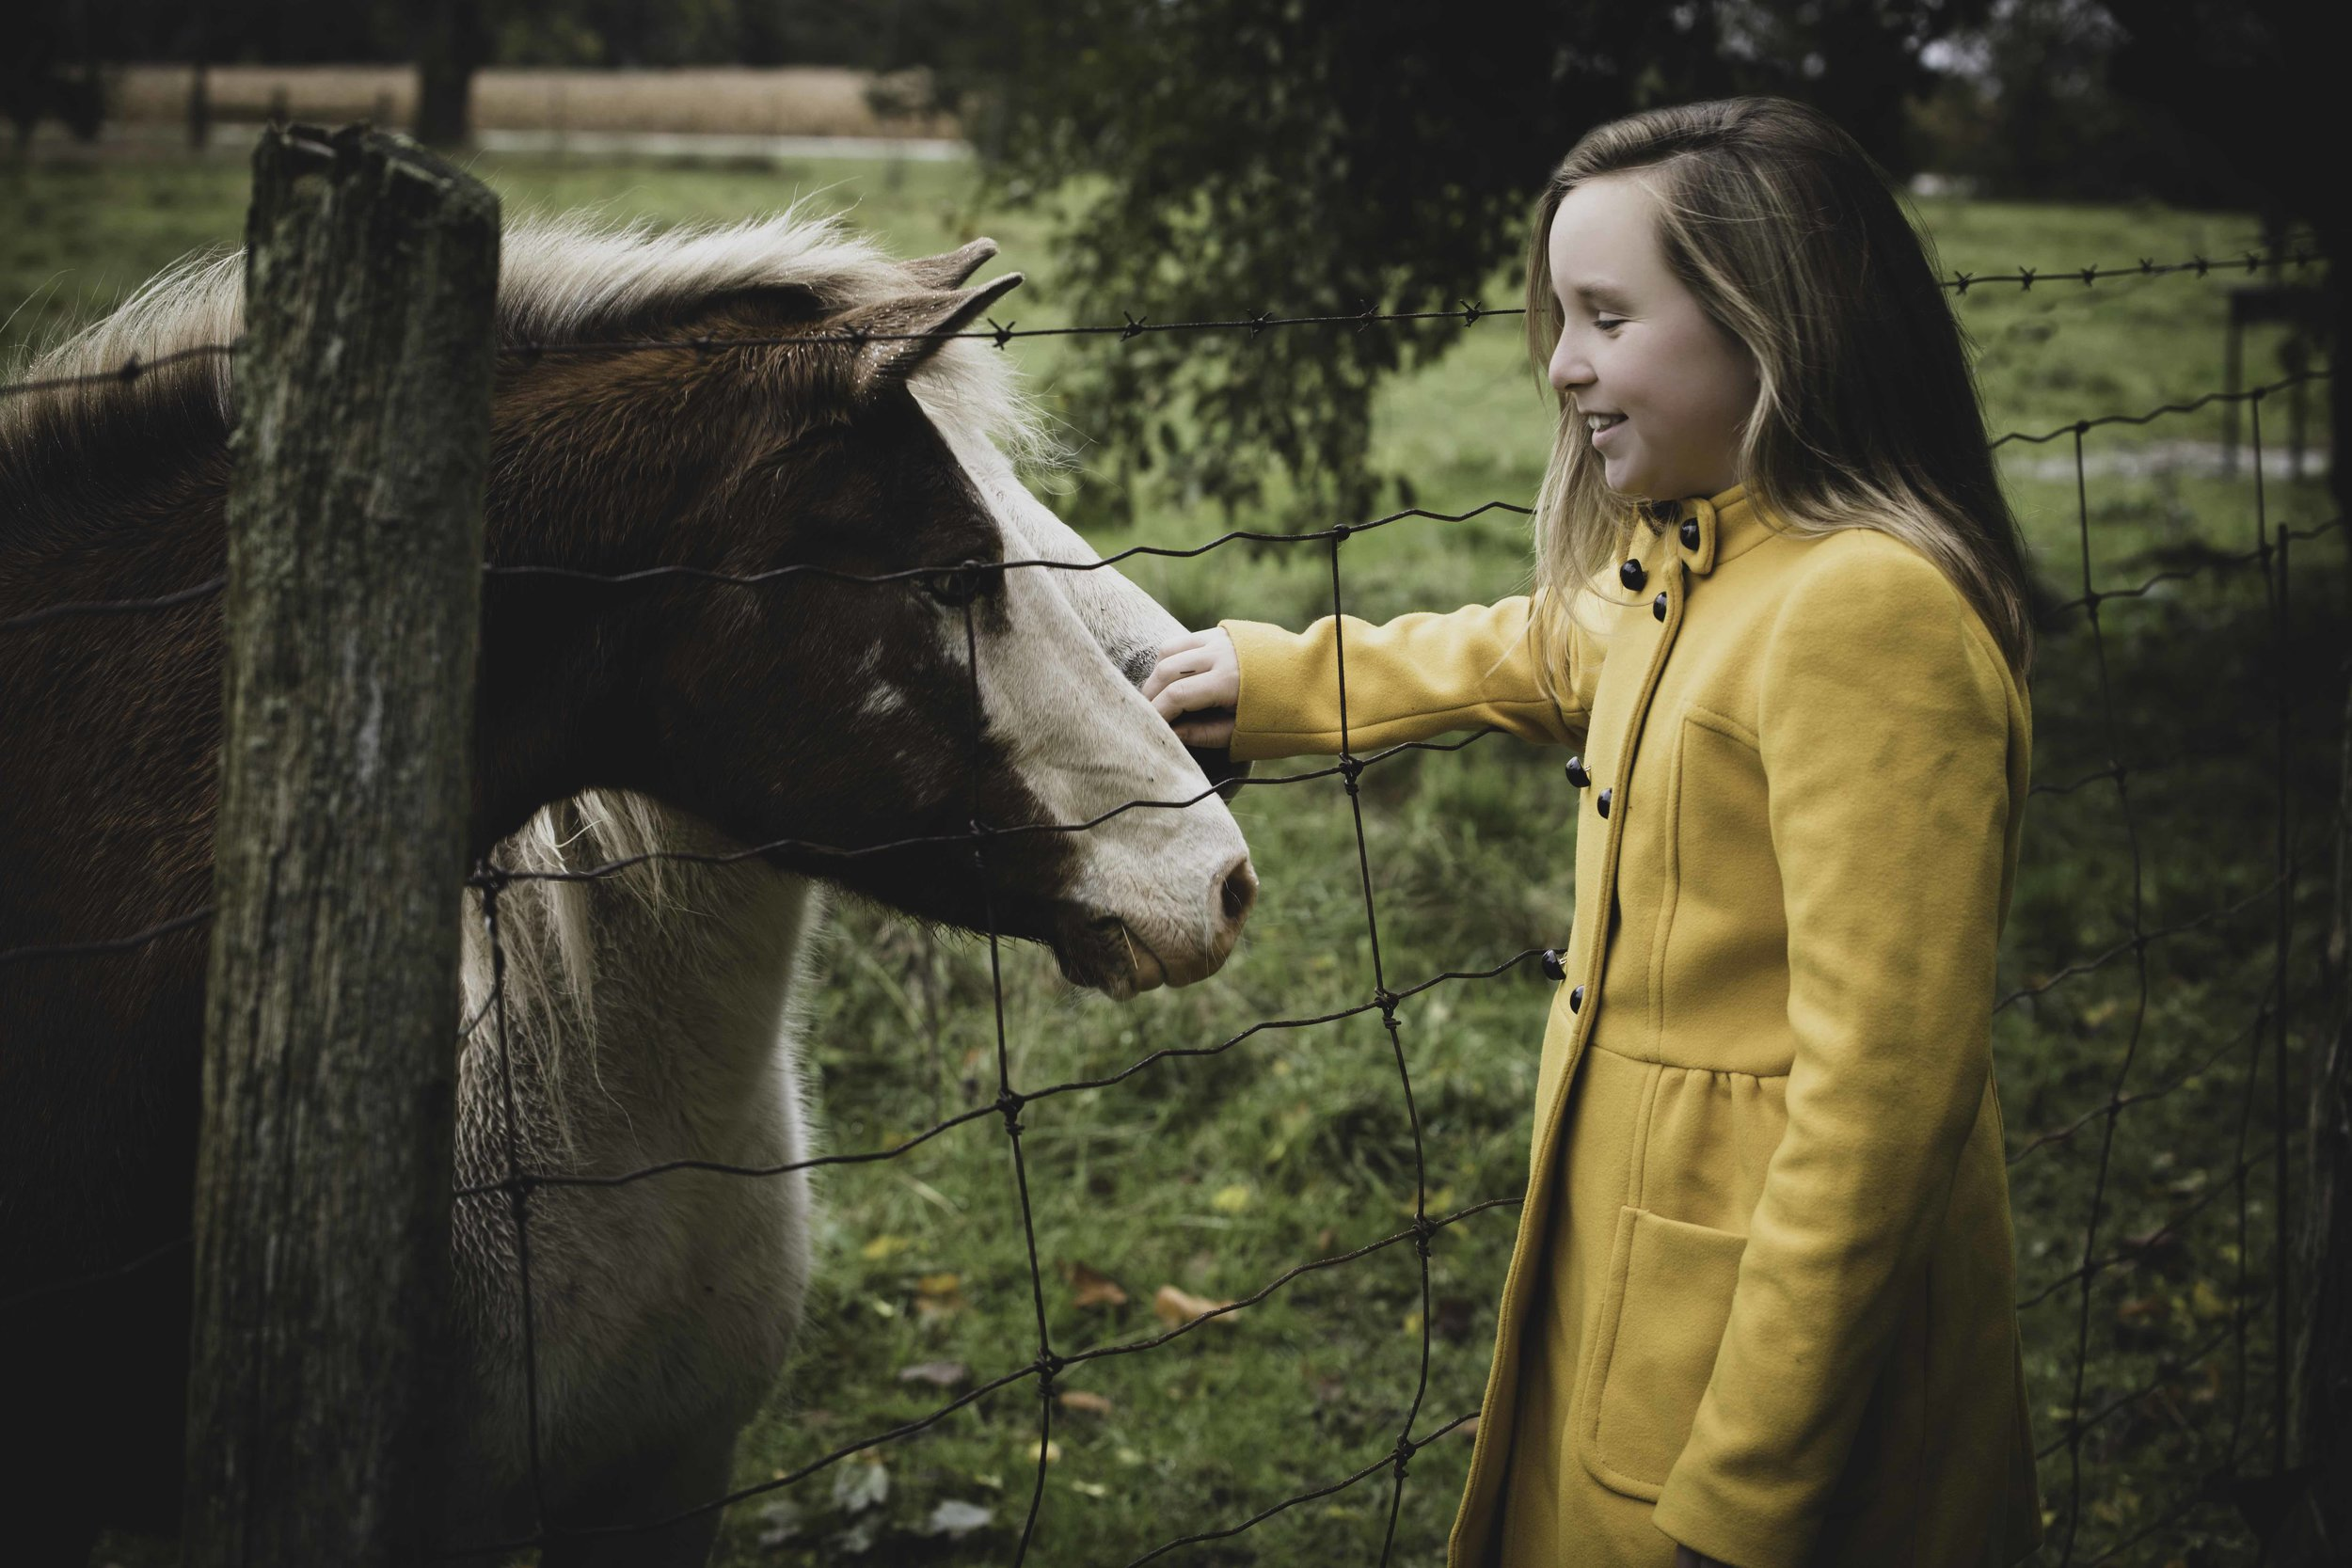 Jodie-Aldred-Photography-Chatham-Kent-Elgin-Middlesex-London-Ontario-Farm-Family-horse-yellow.jpg